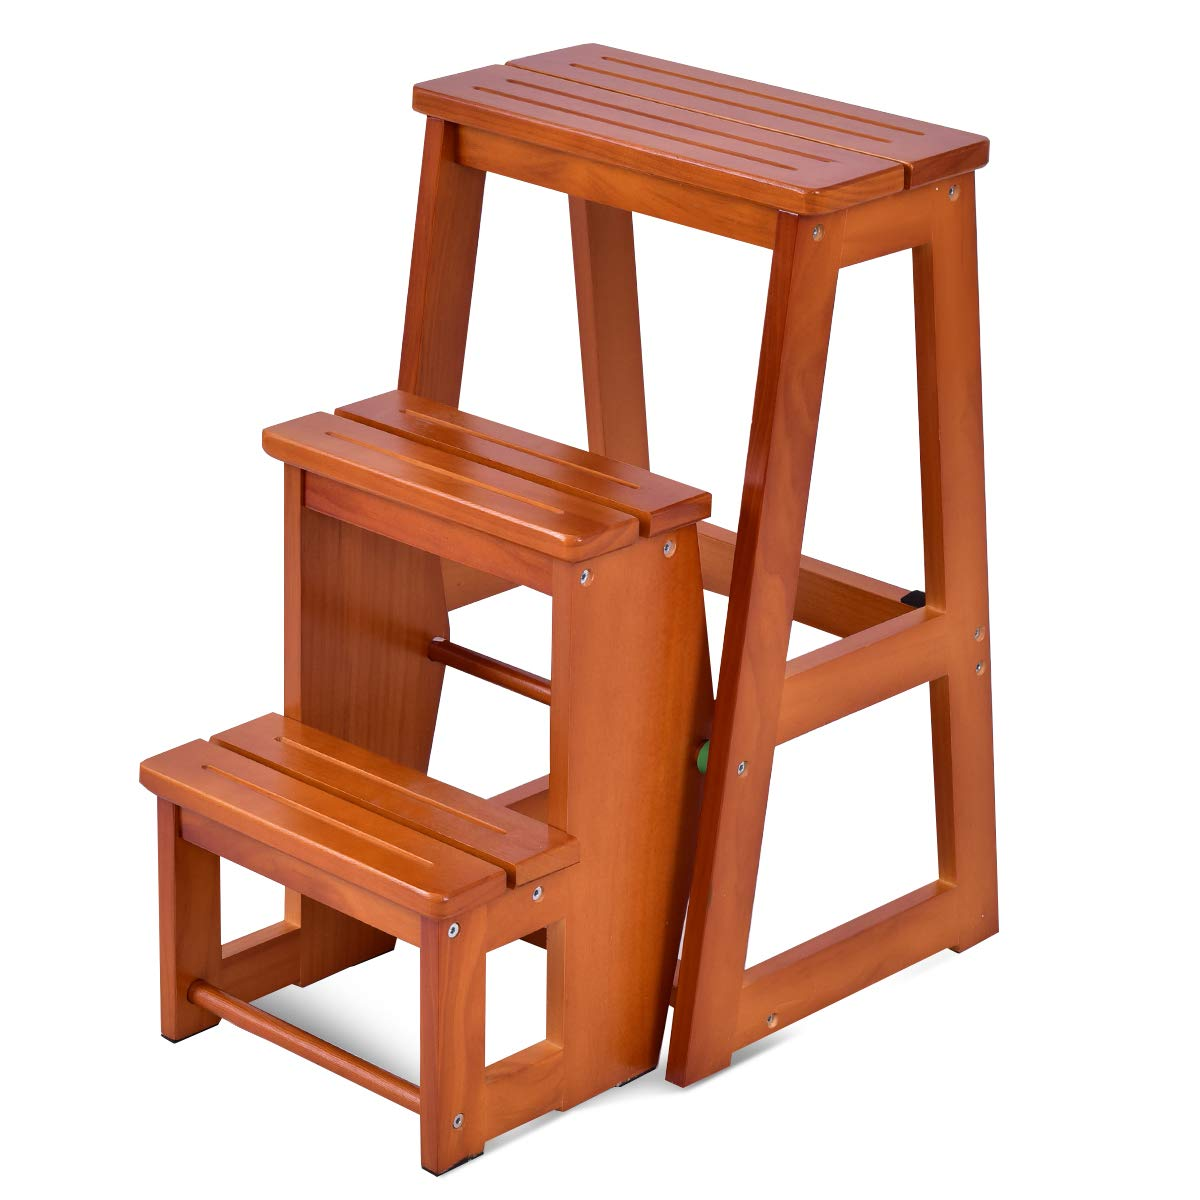 Surprising Giantex 3 Tier Folding Step Stool Multi Functional Ladder Chair Bench Seat Utility Walnut Forskolin Free Trial Chair Design Images Forskolin Free Trialorg